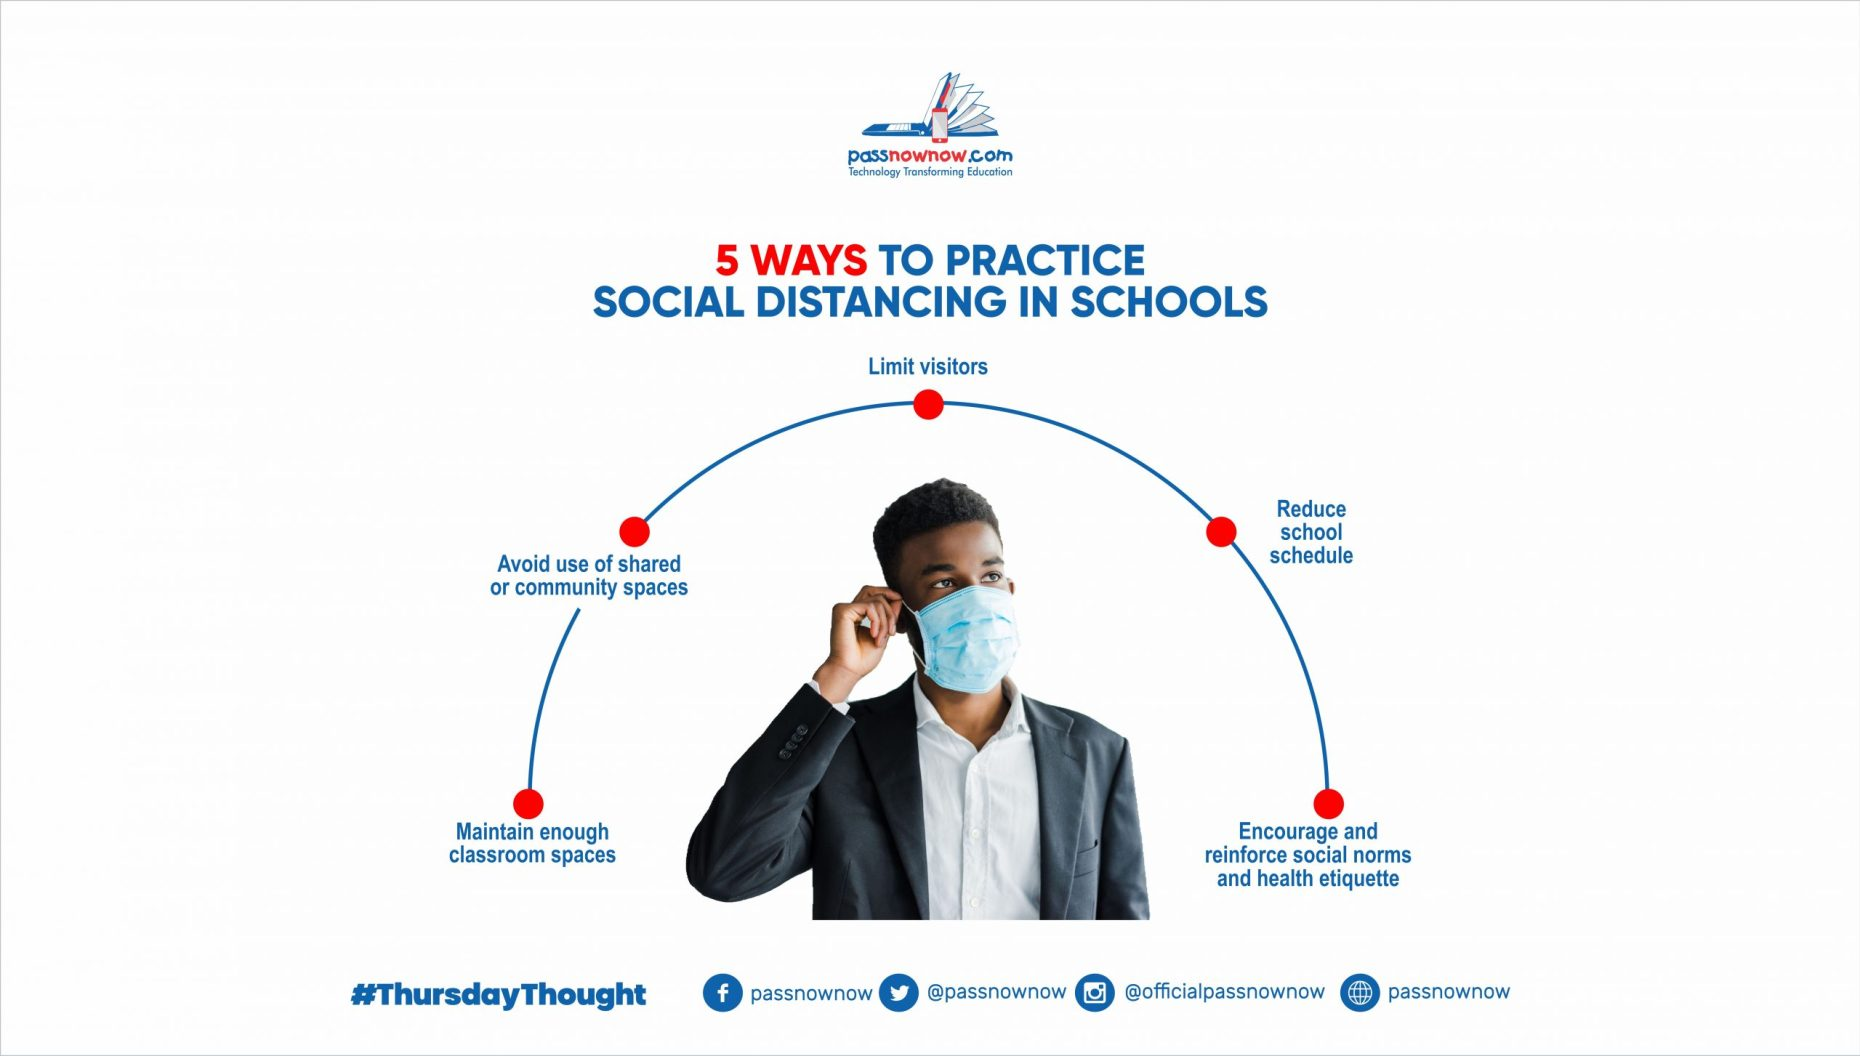 5 ways to Practice Social Distancing in Classrooms